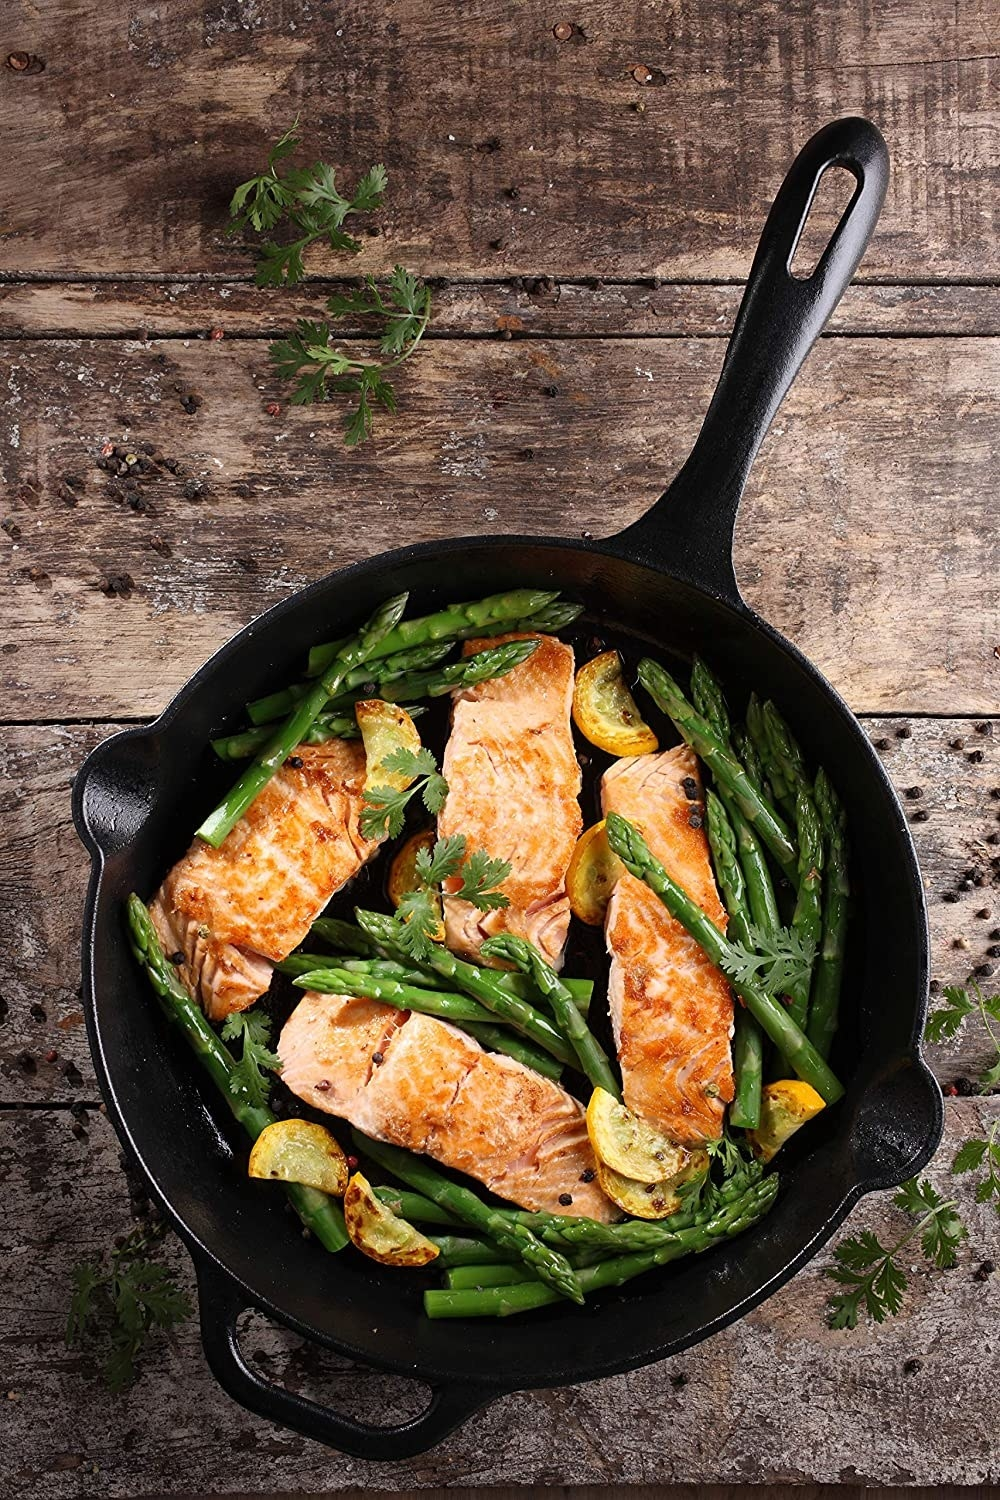 Salmon and asparagus in the skillet with our spouts and a helper handle